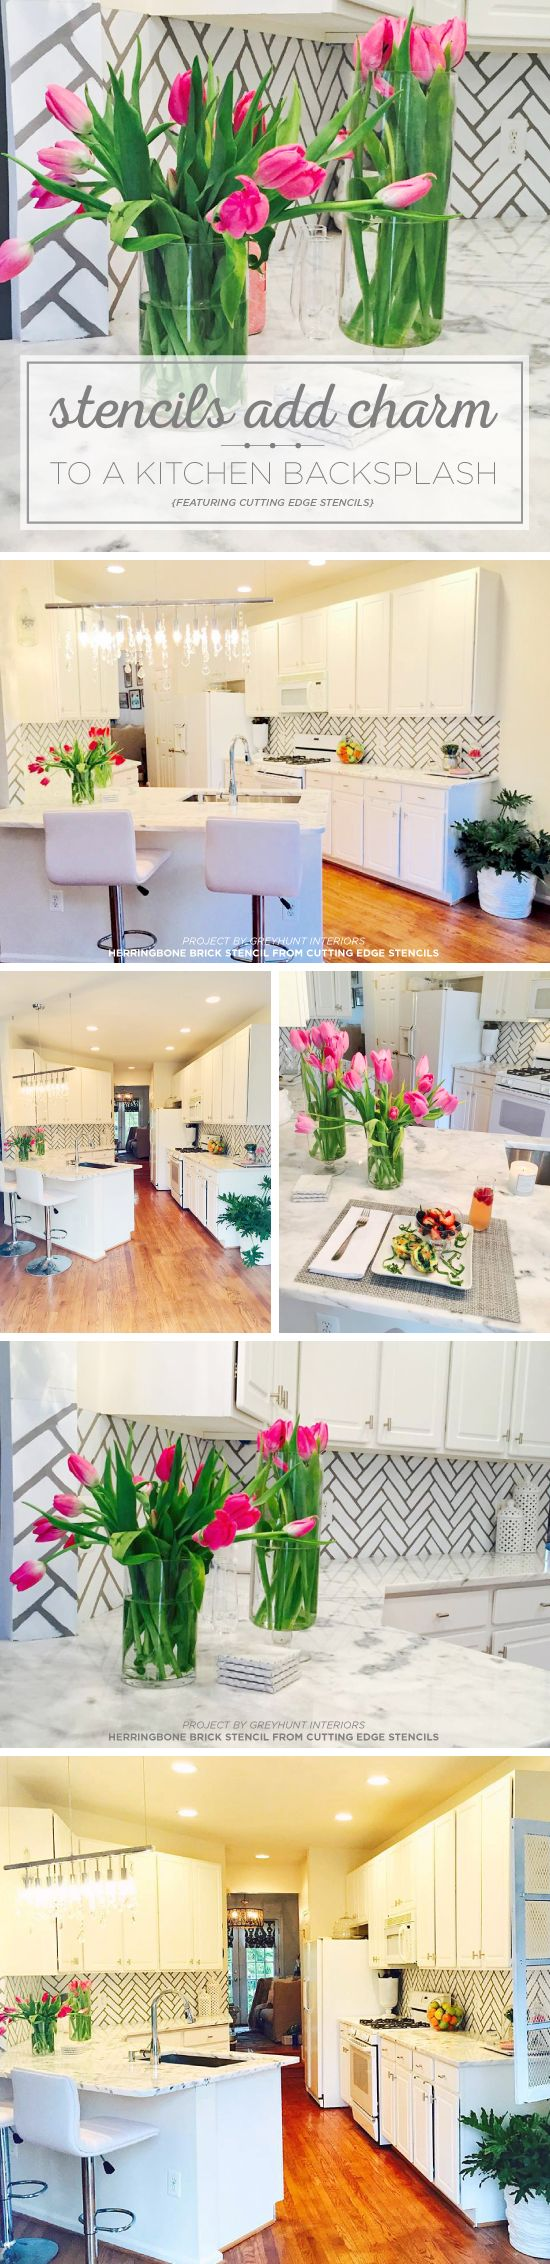 Cutting Edge Stencils shares a DIY kitchen makeover with a stenciled backsplash using the Herringbone Brick Allover pattern. http://www.cuttingedgestencils.com/herringbone-brick-pattern-stencil-wall-decor.html